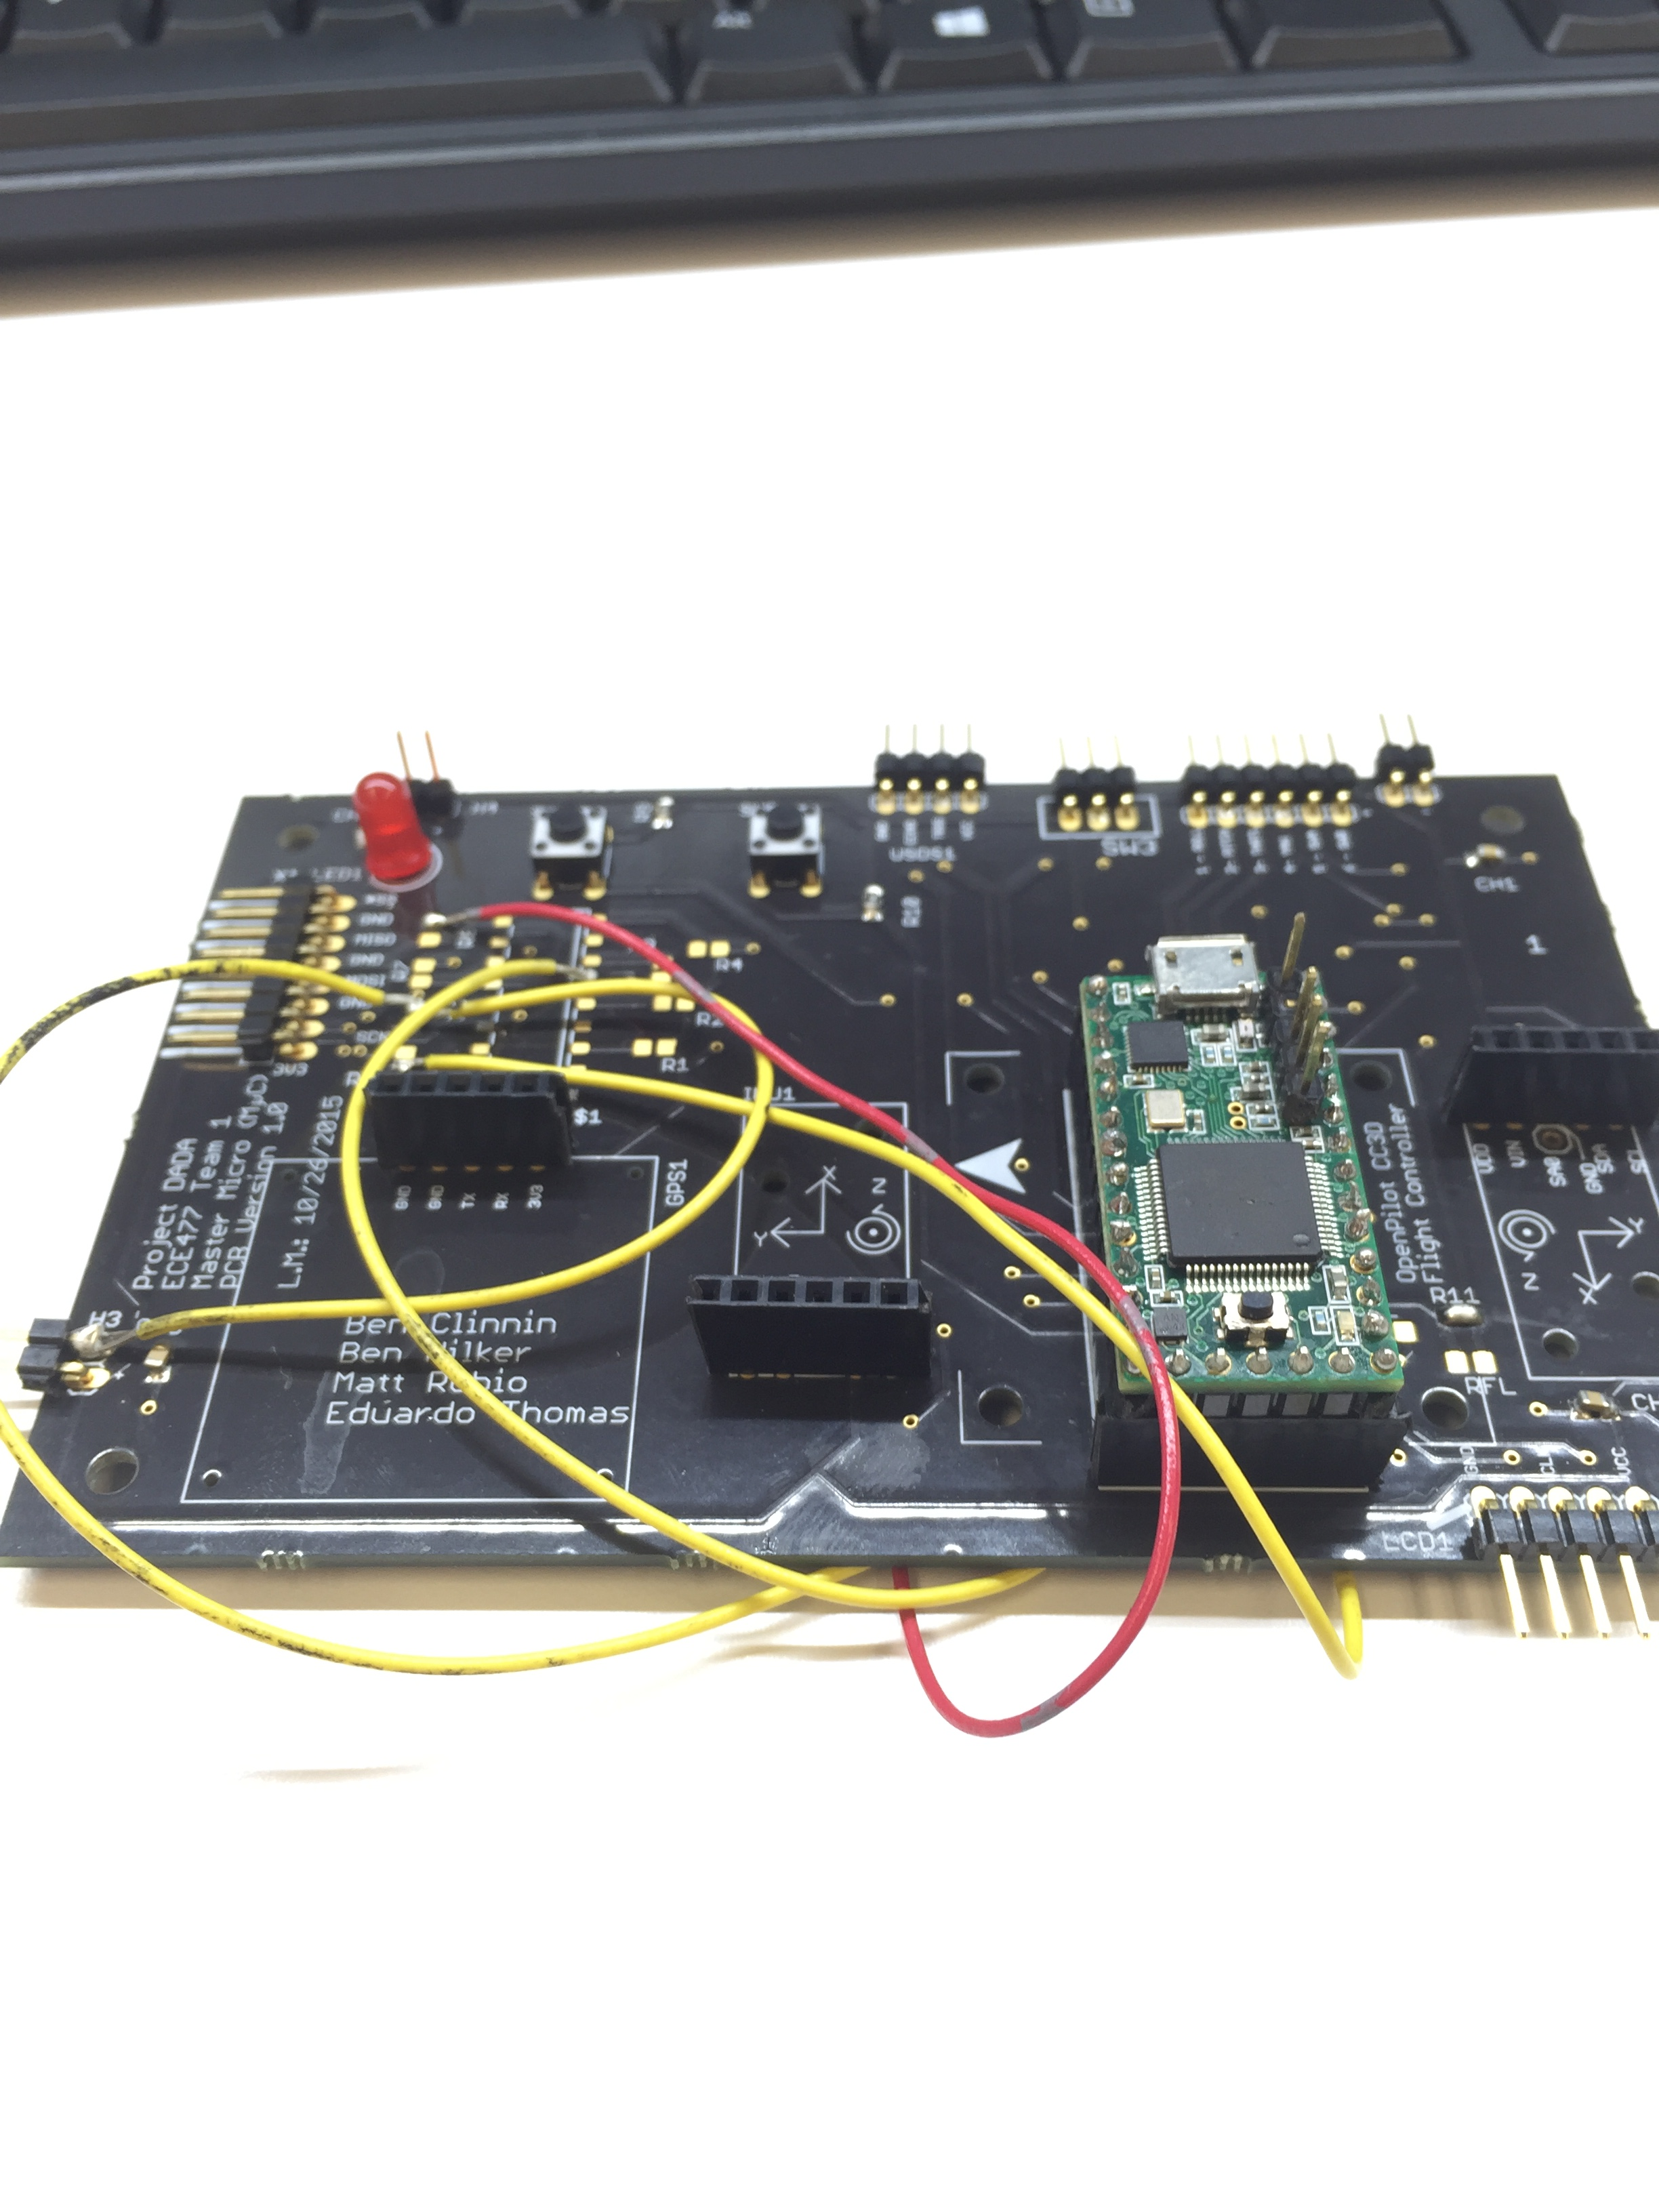 Ece477 Course Documents Cc3d Wiring Diagrams 3d Completed The Fly Of Master Quadcopter Board I Also Did Connection And Short Tests With Digital Multimeter